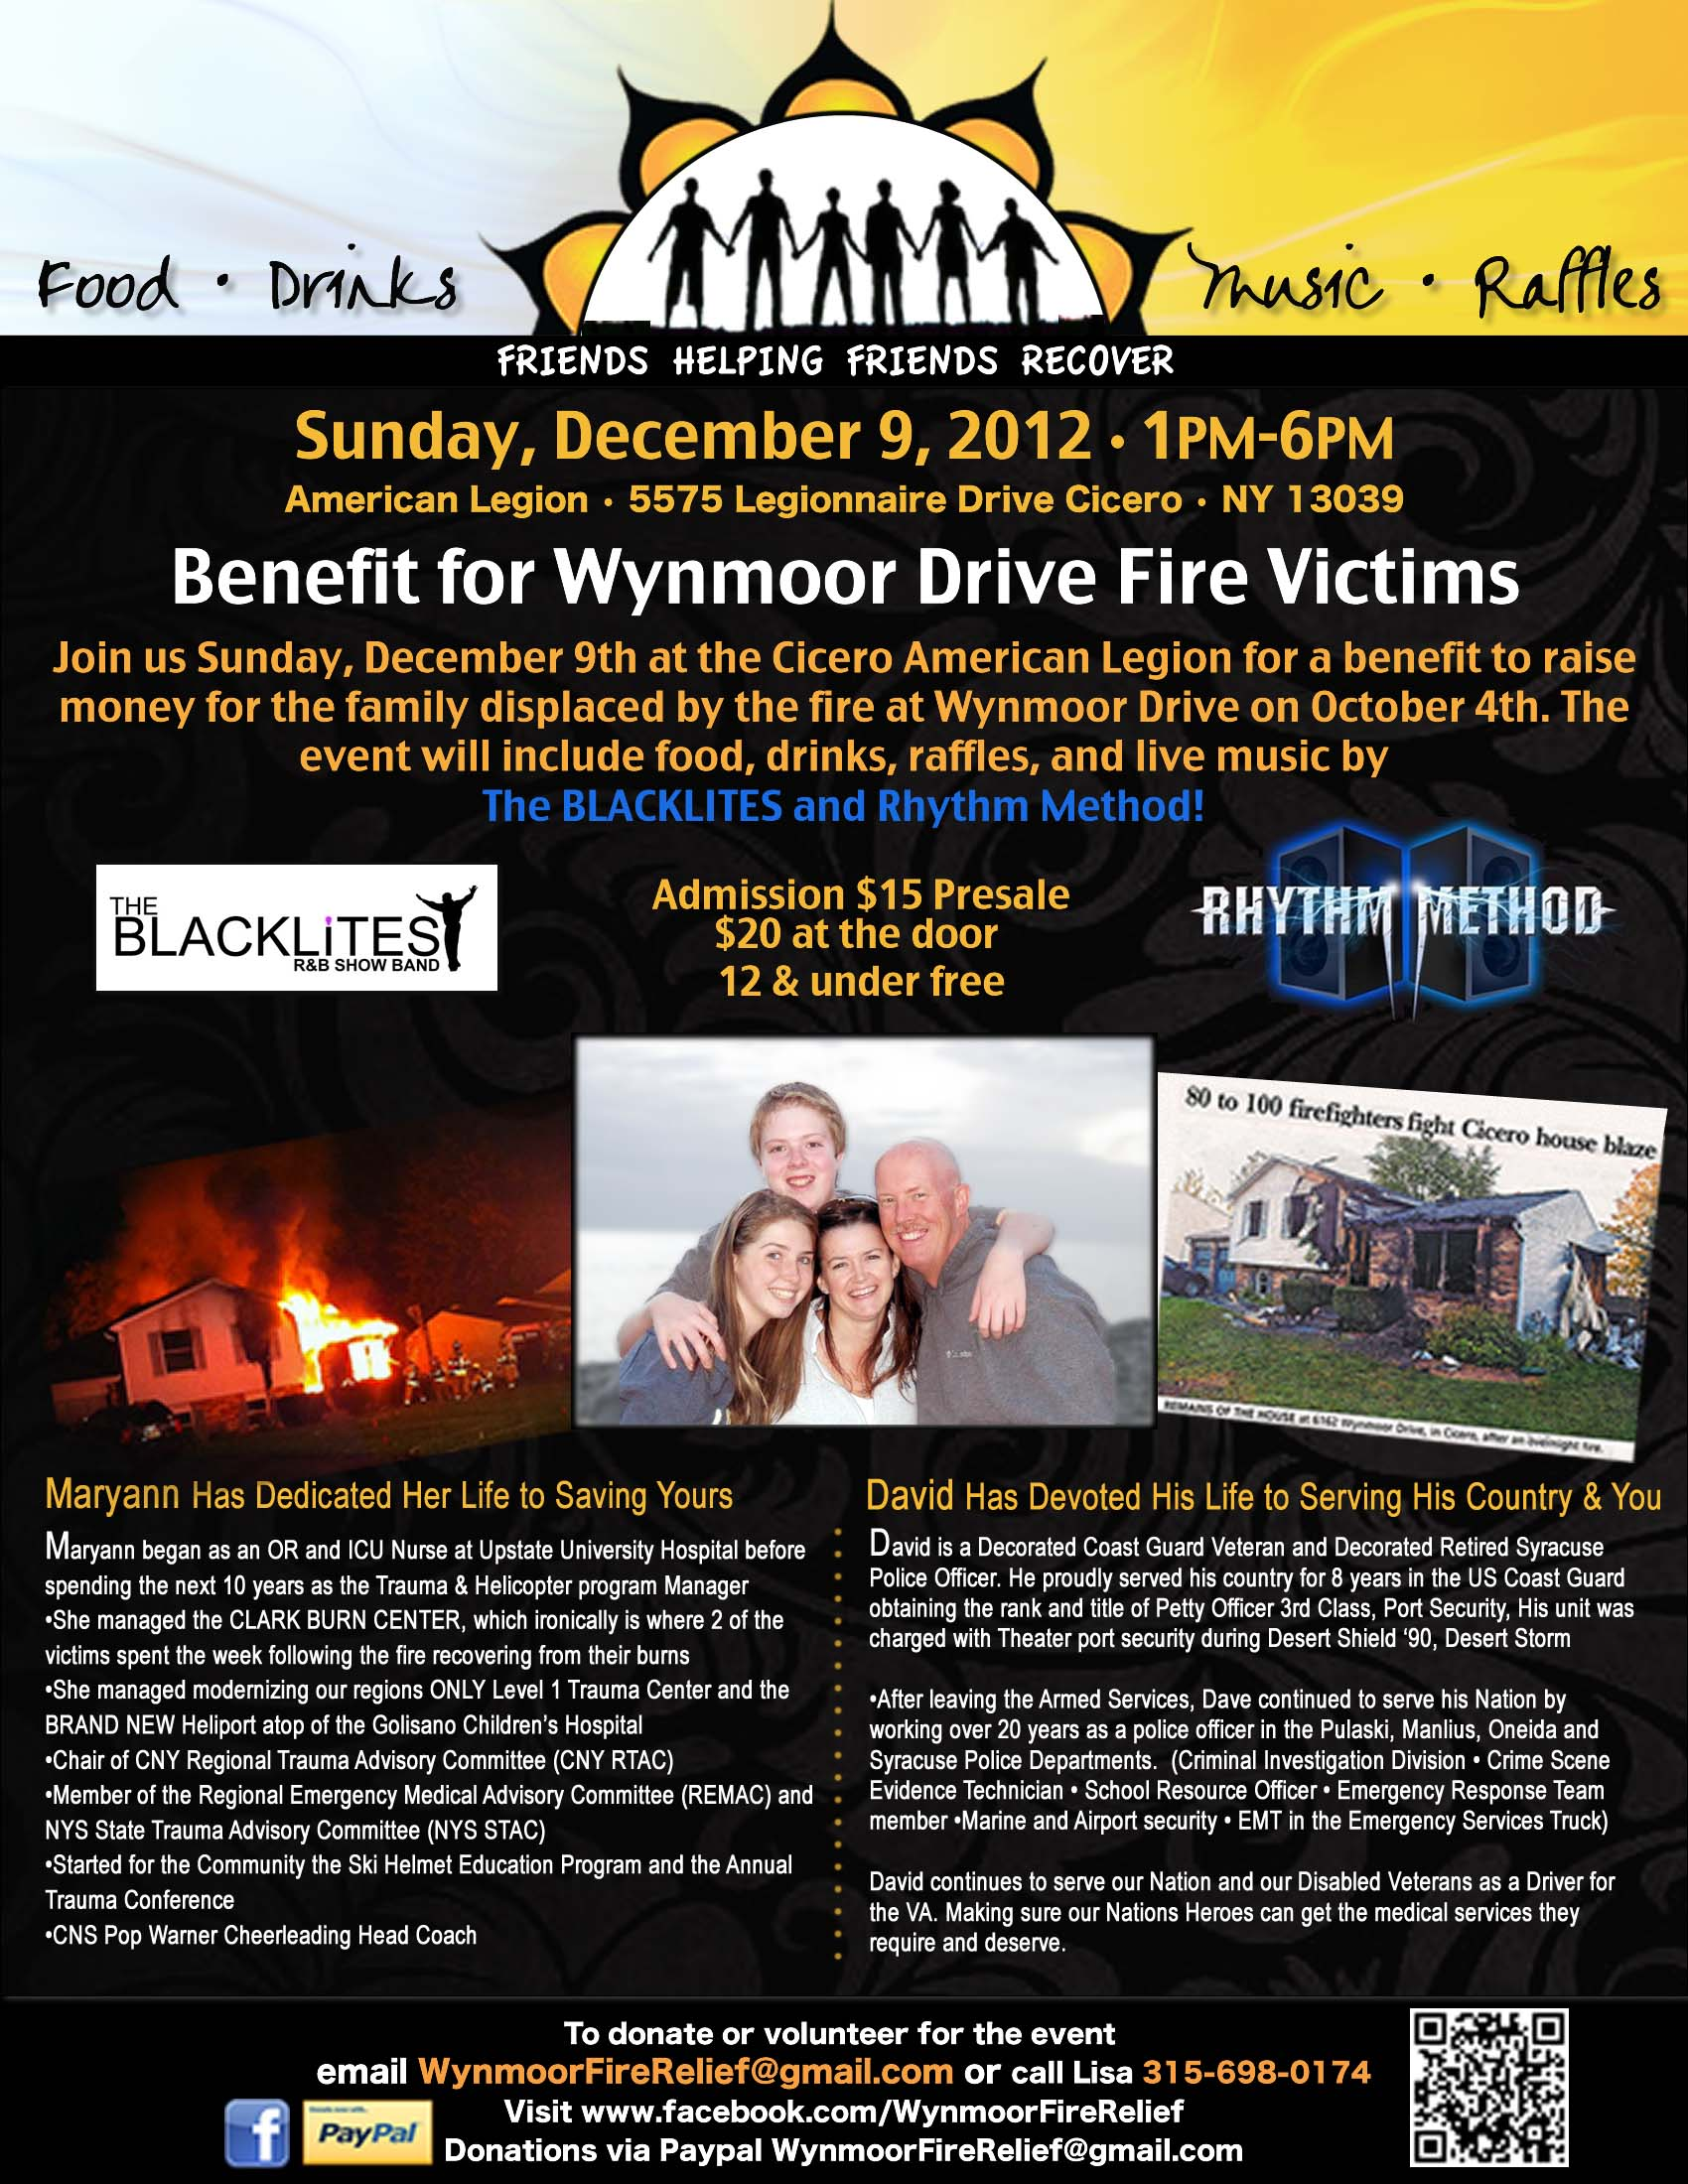 Benefit this weekend to help family whose home was destroyed by fire